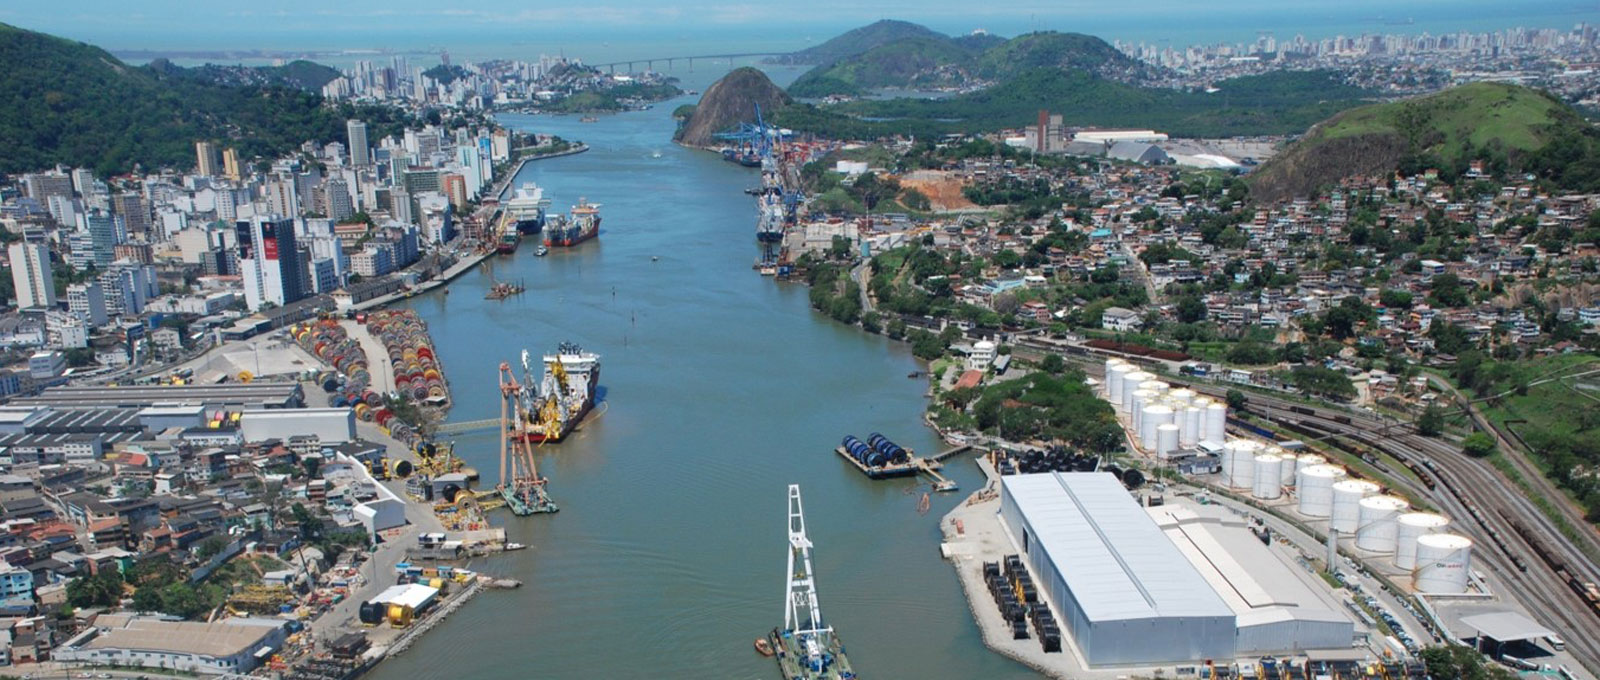 Prysmian Group to provide 200 km of Steel Tube & Thermoplastic Electro-Hydraulic Umbilical to Petrobras in Brazil, for a total worth of about 66 M €